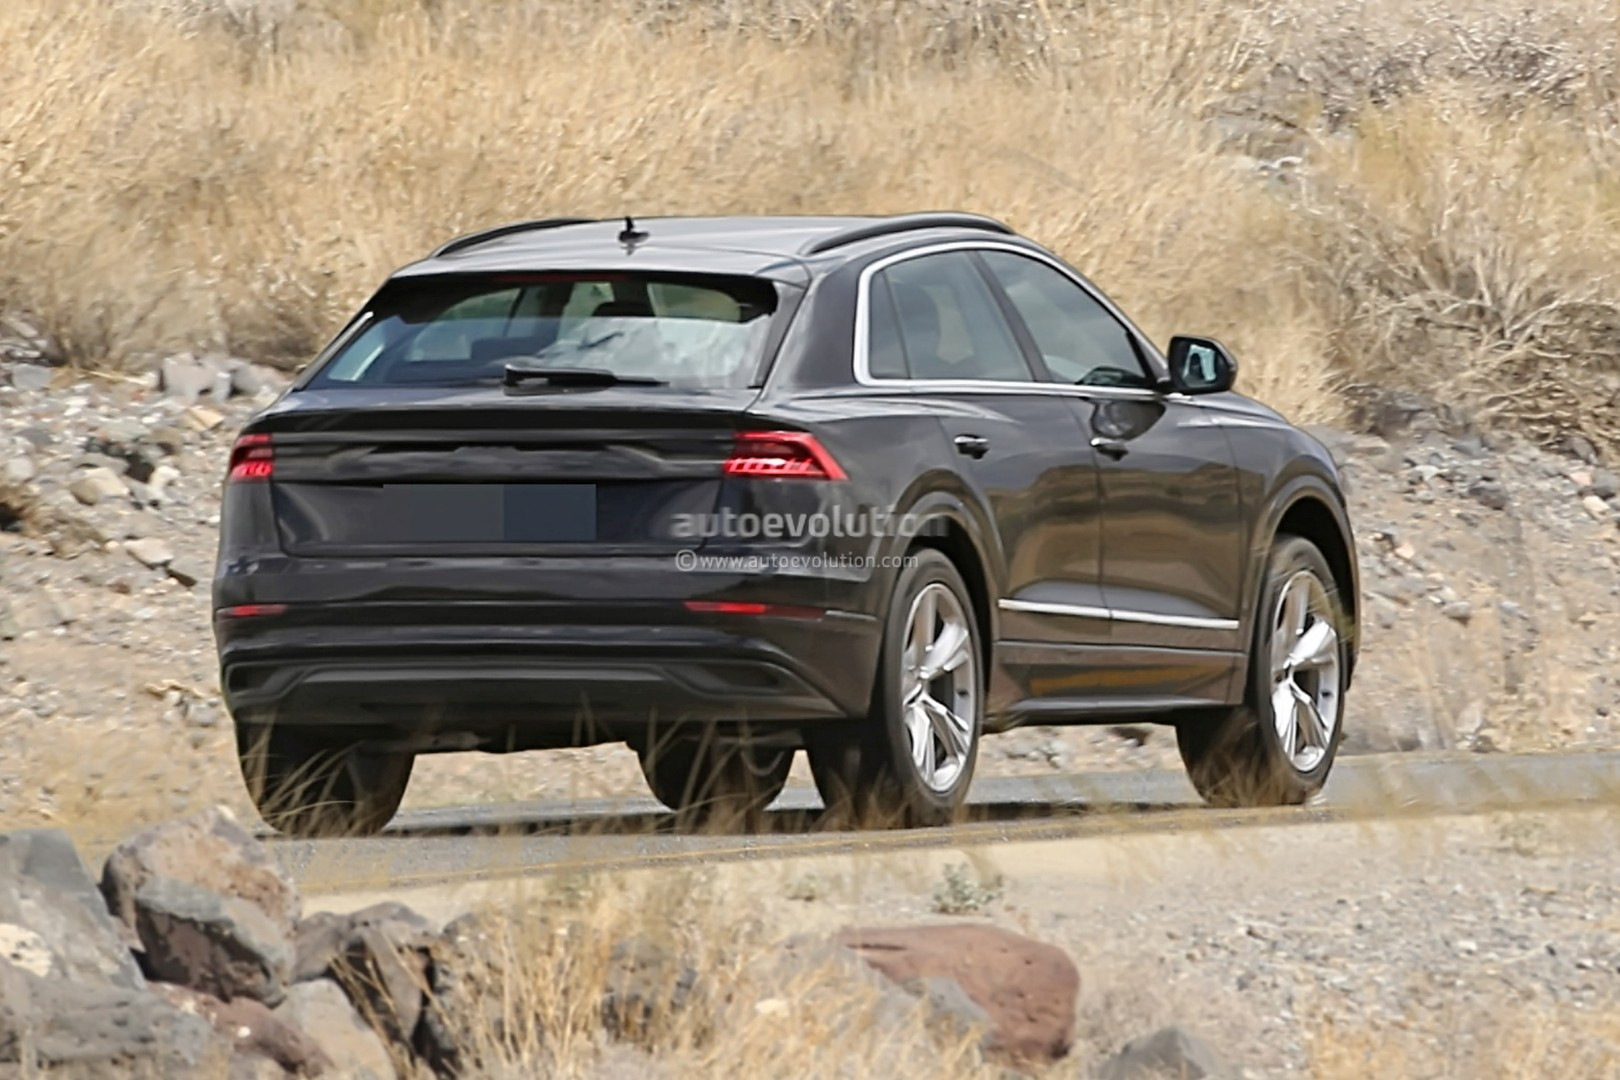 2019 audi q8 revealed by production ready prototype has urus like rear end autoevolution. Black Bedroom Furniture Sets. Home Design Ideas